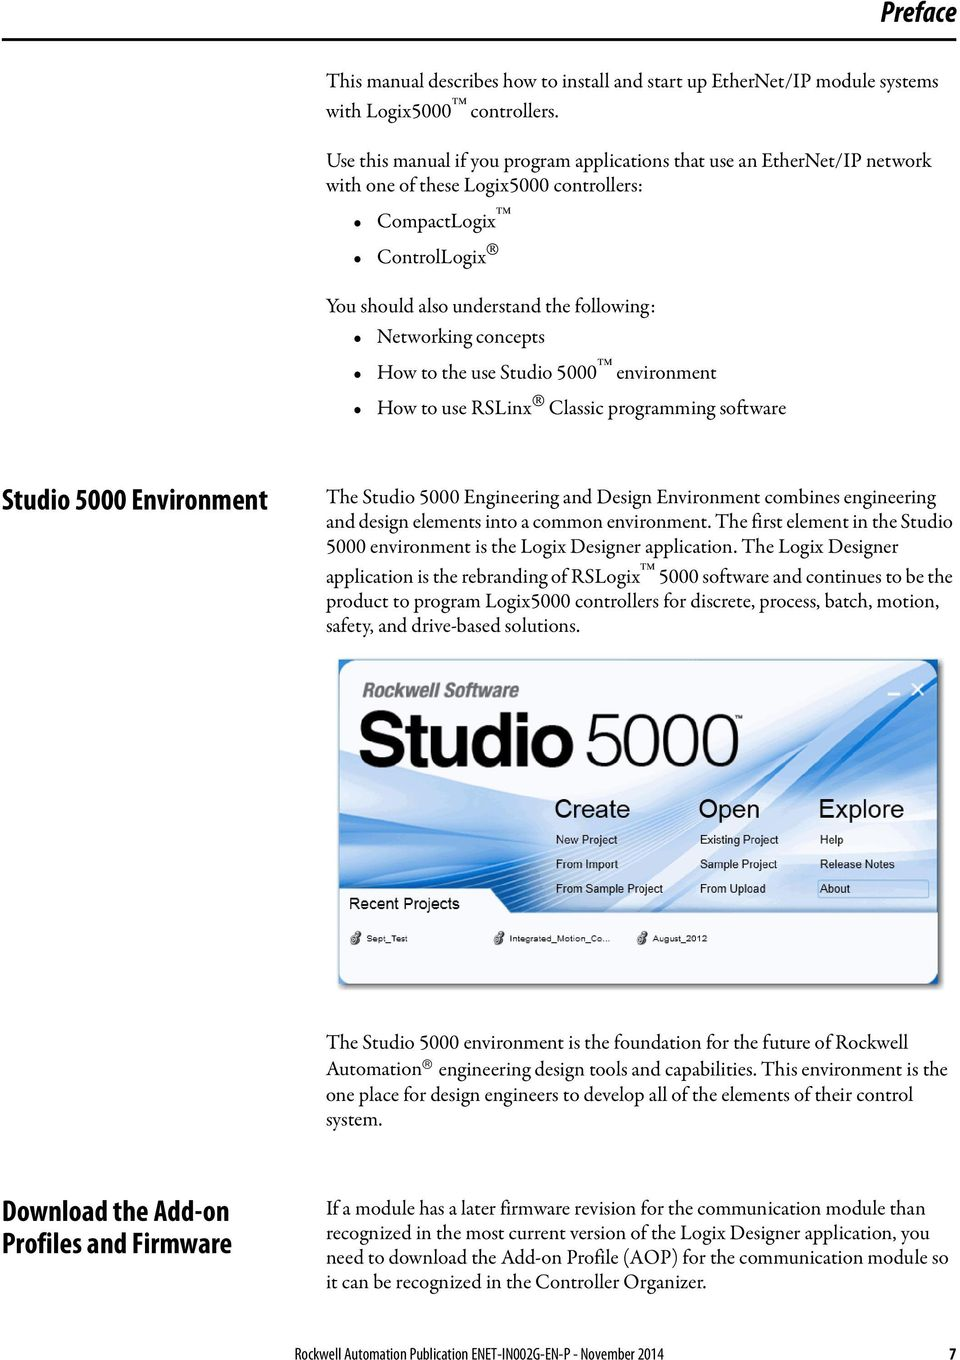 concepts How to the use Studio 5000 environment How to use RSLinx Classic programming software Studio 5000 Environment The Studio 5000 Engineering and Design Environment combines engineering and